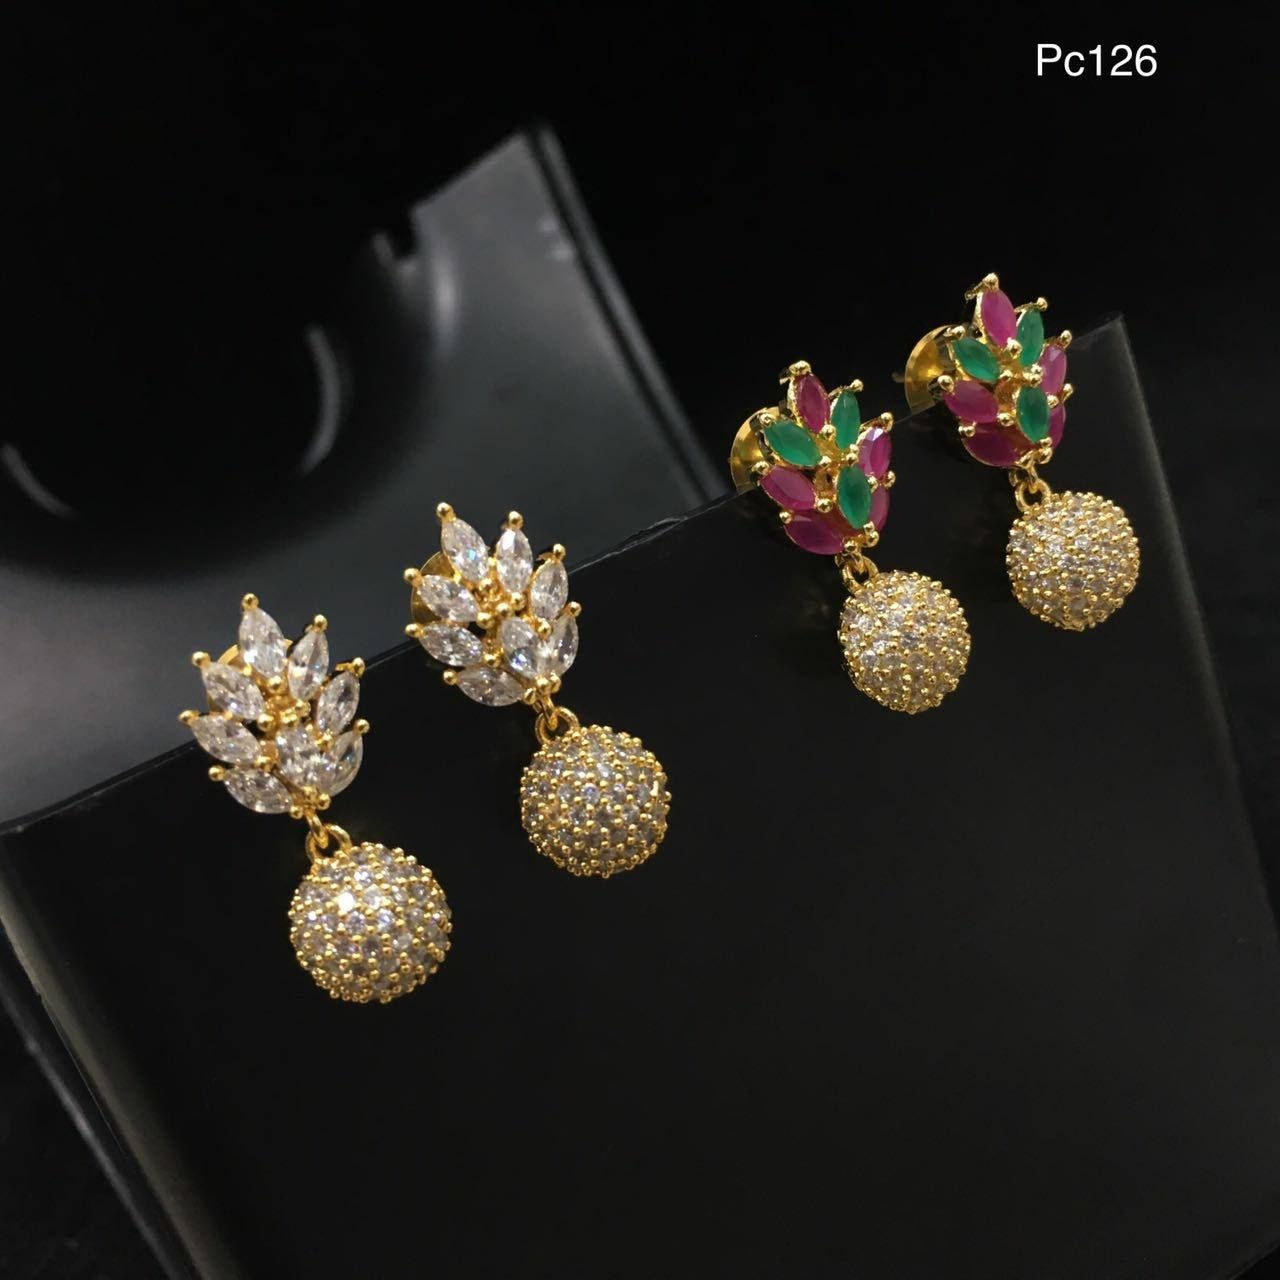 Beautiful Ear Studs With Leaf Design Studded White Green And Pink Color Stones Ball Hanging 20 September 2017